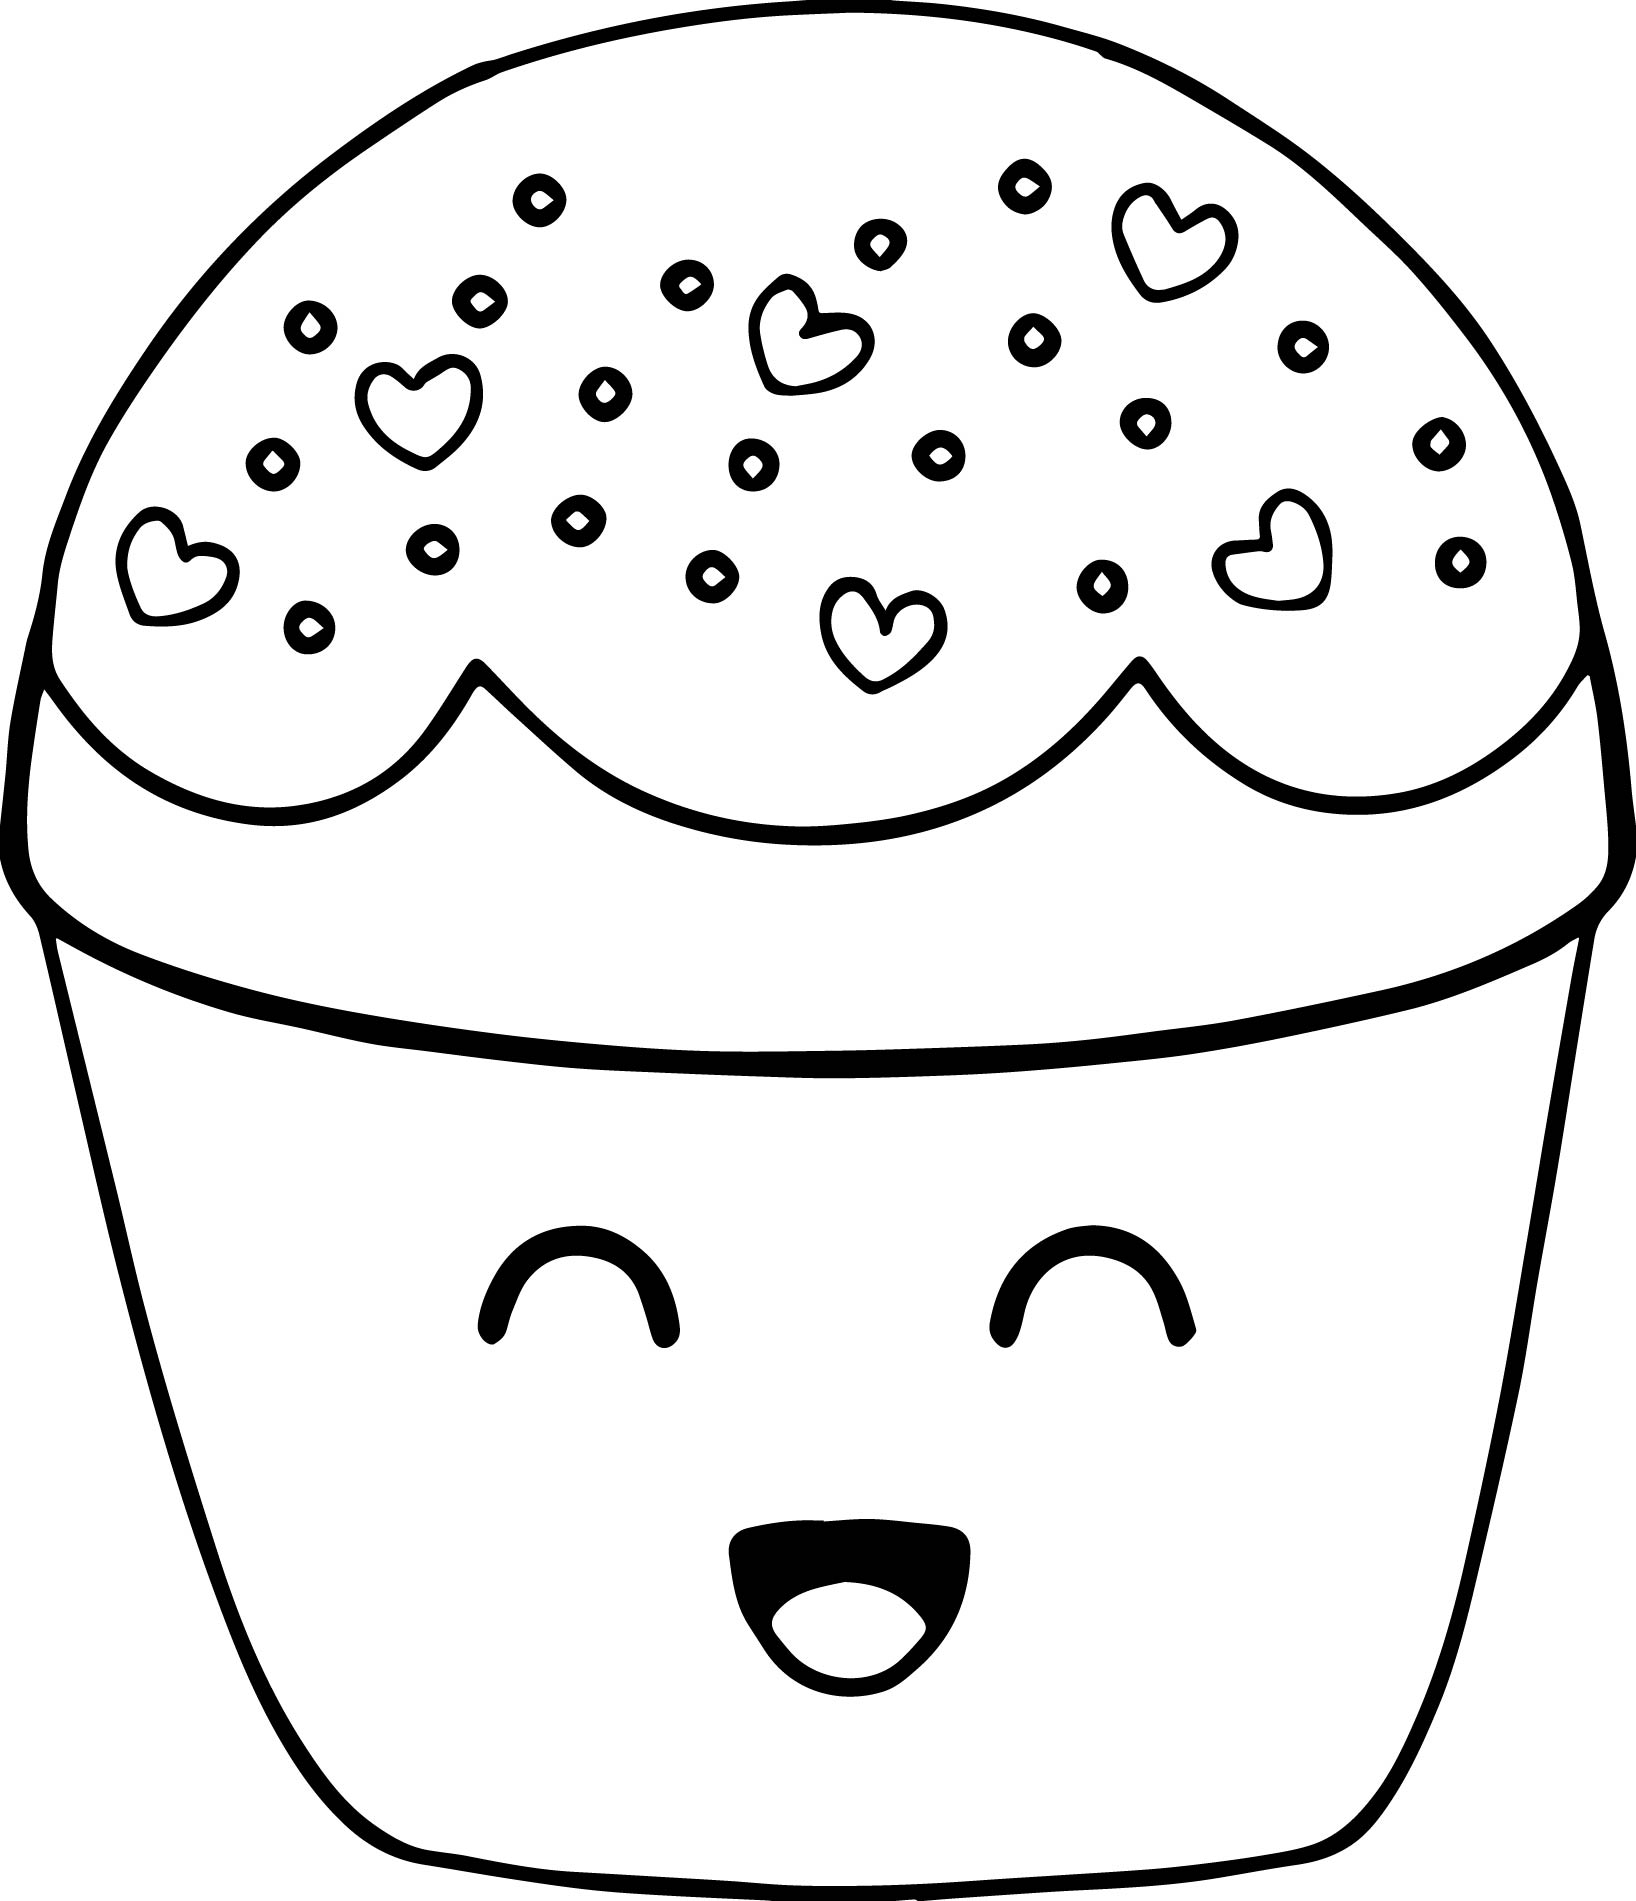 very cute coloring pages - photo#11